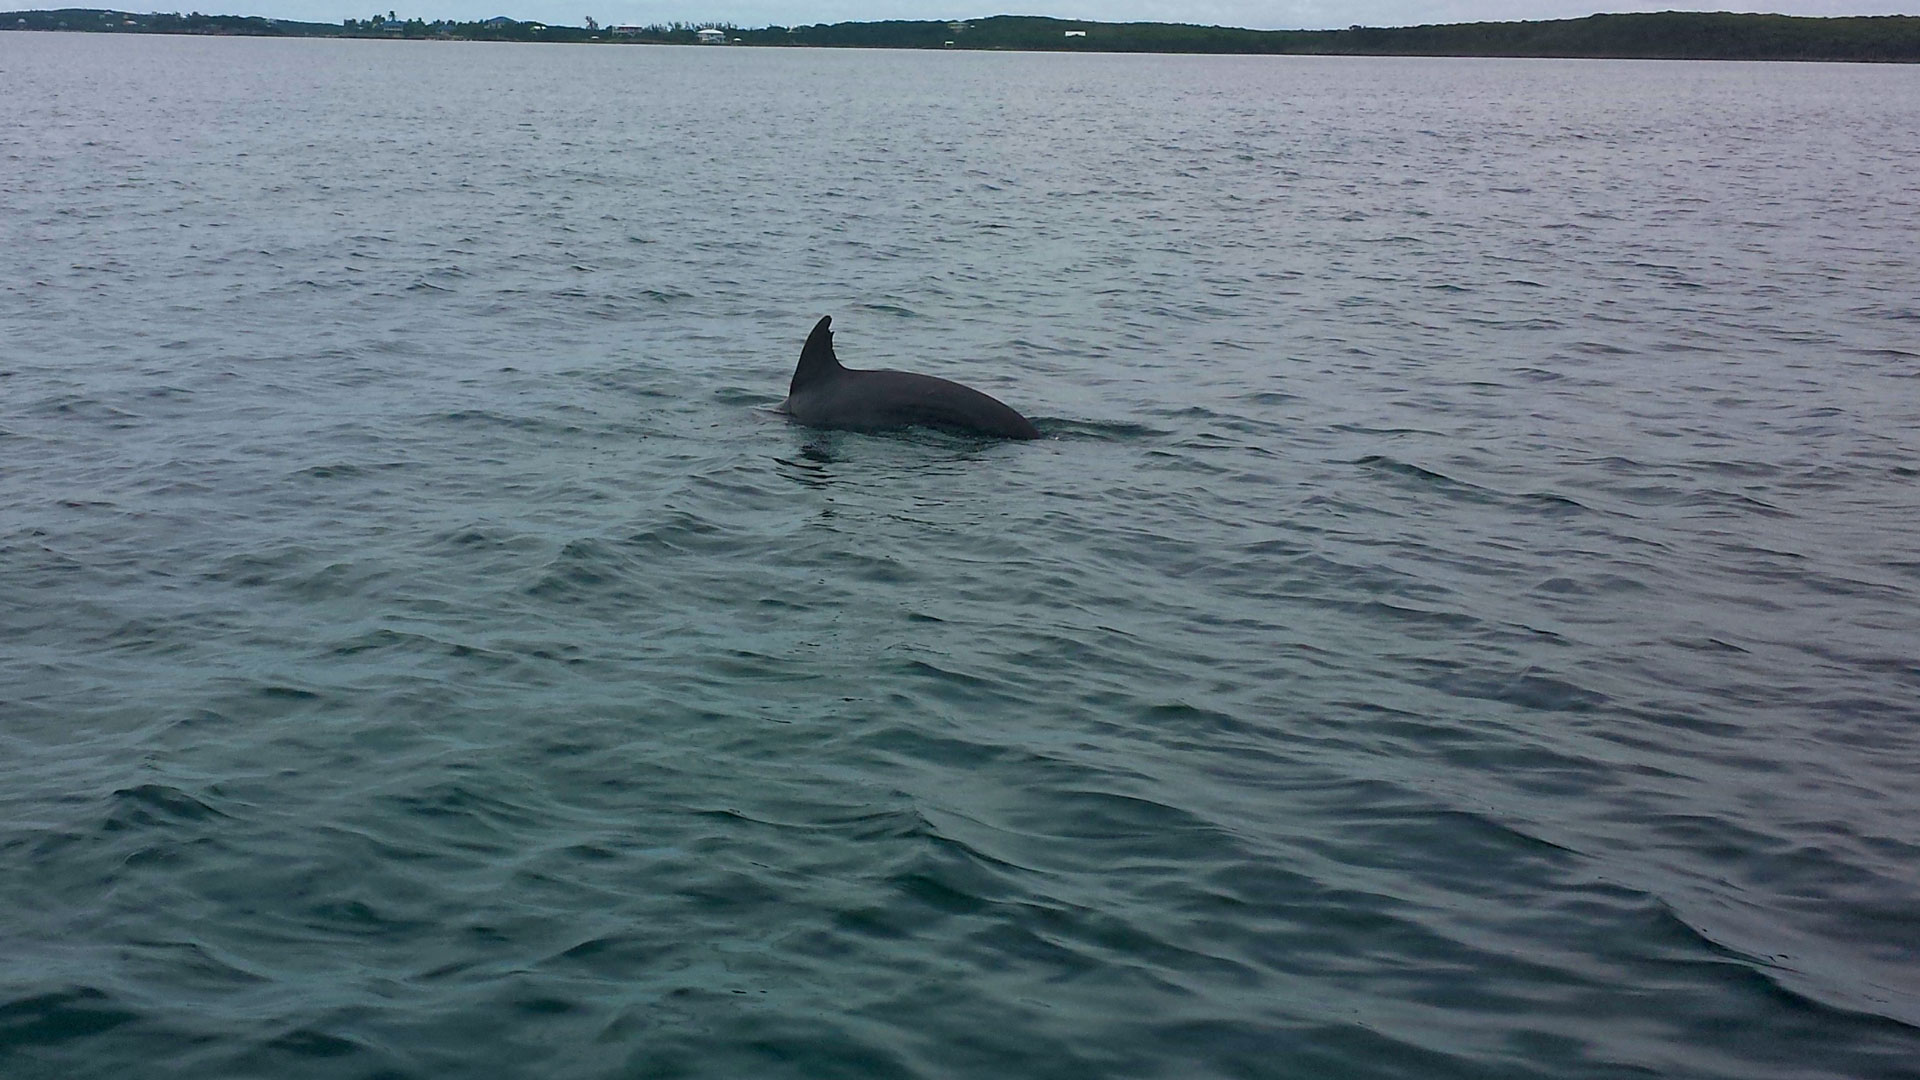 The dolphins of Tilloo Cay